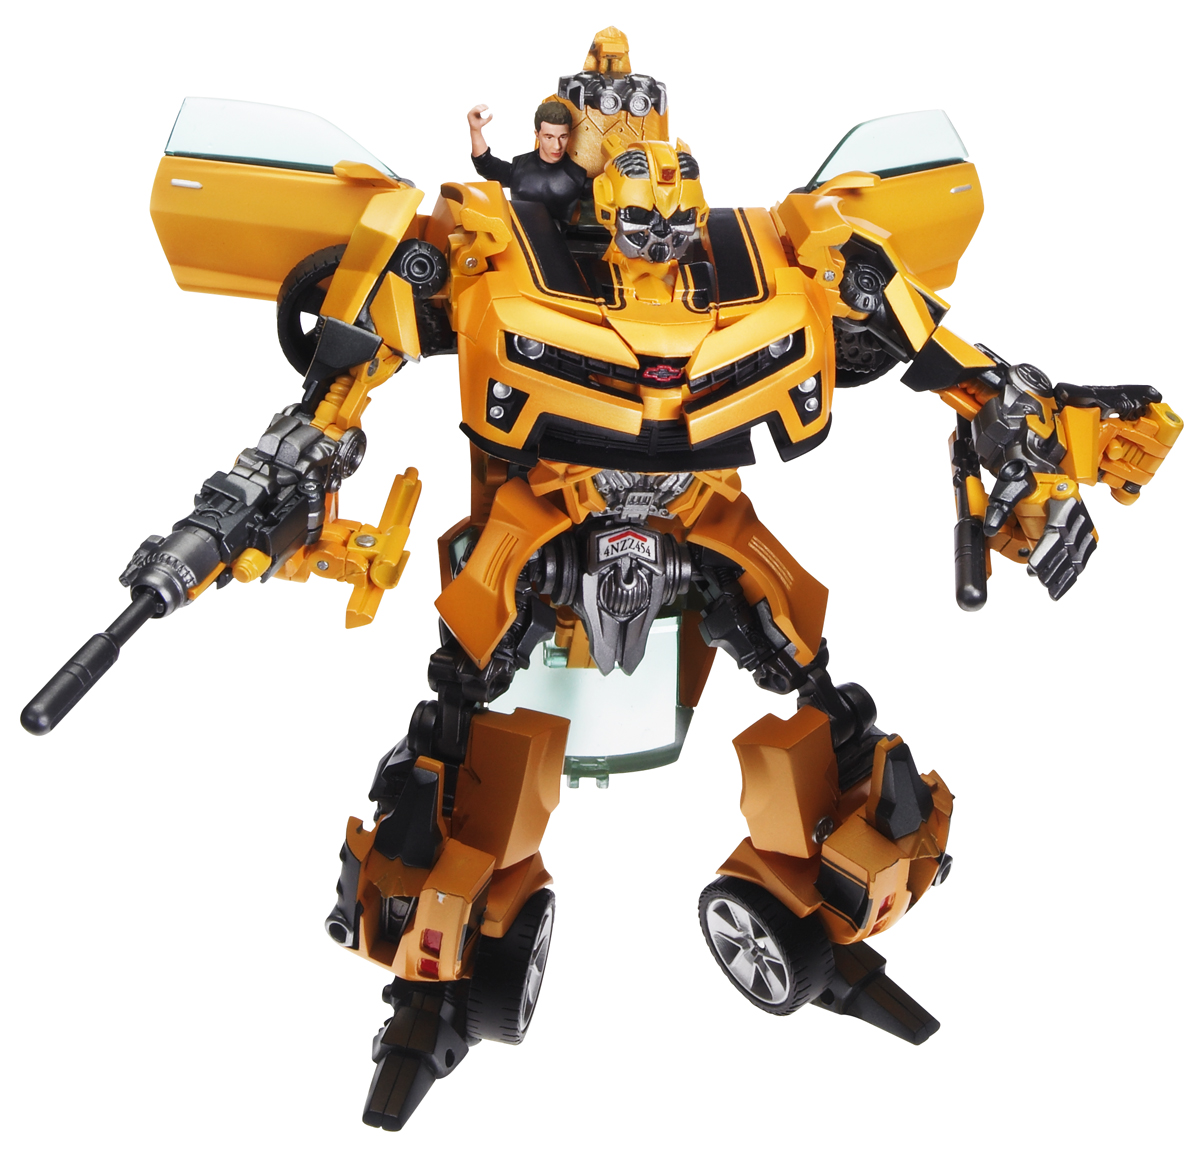 Best Transformers Toys And Action Figures : Bumblebee transformers revenge of the fallen hunt for